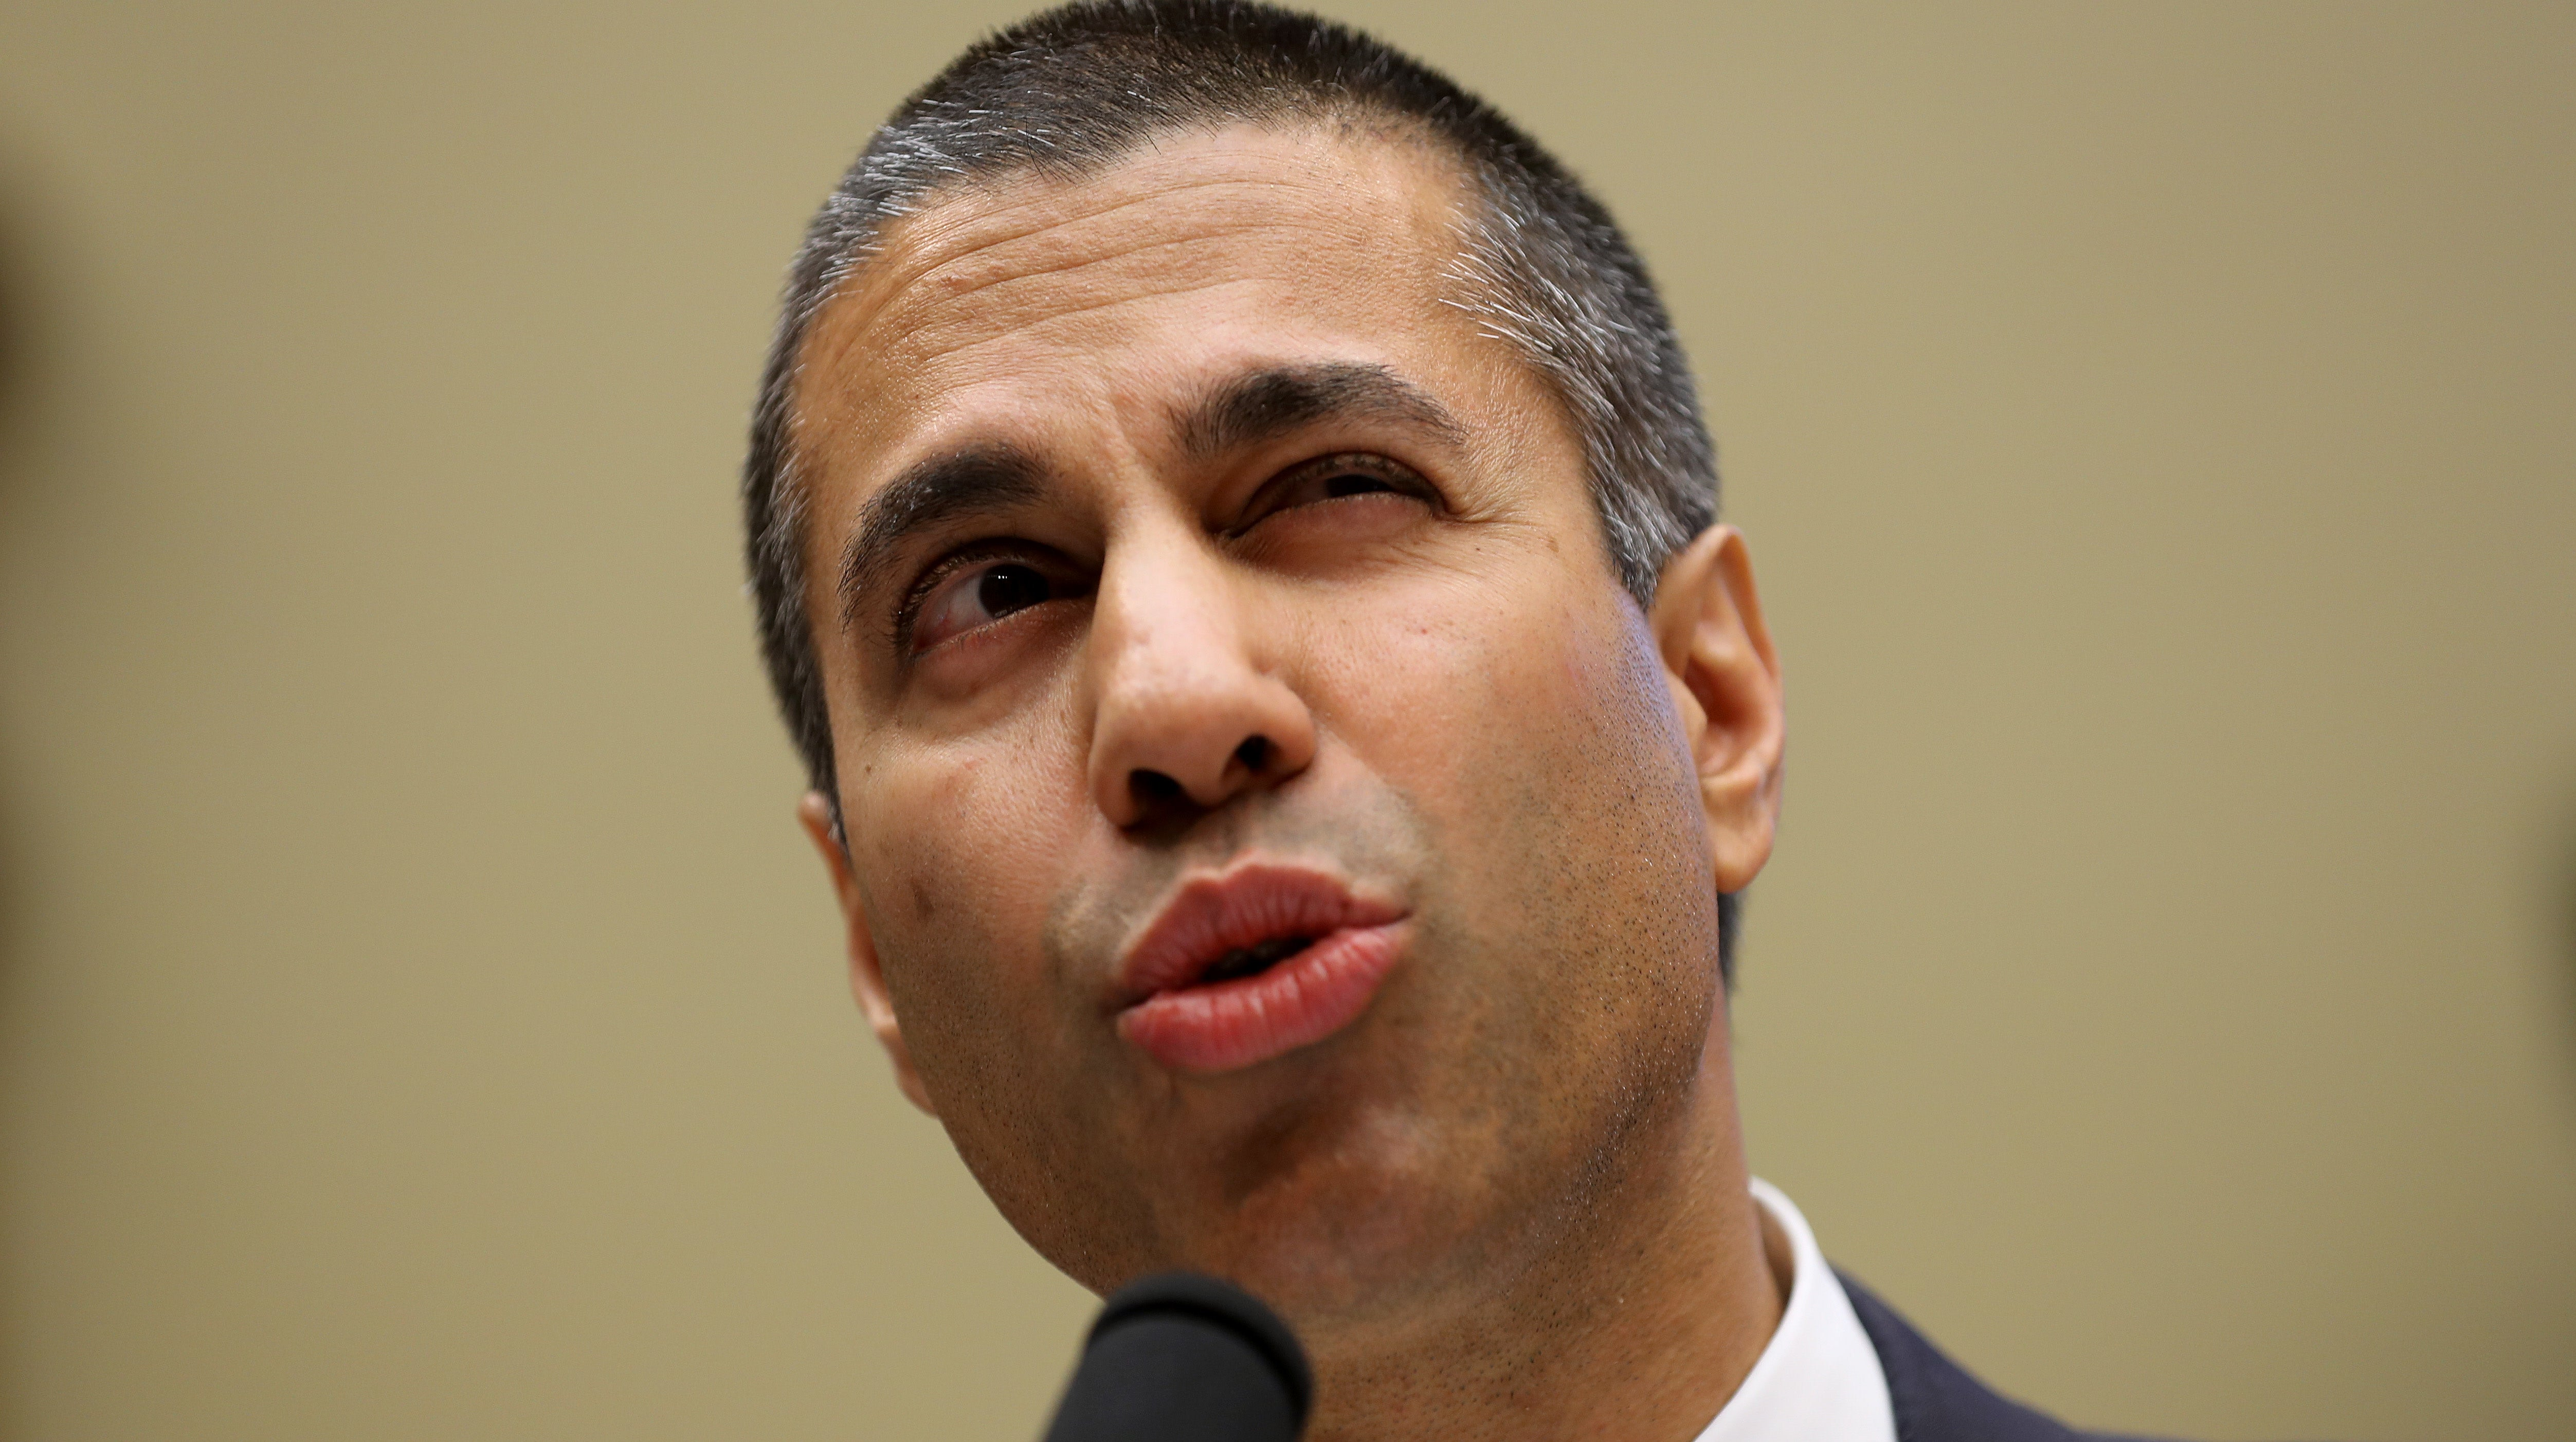 Judge Orders U.S. Federal Communications Commission To Hand Over IP Addresses Linked To Fake Net Neutrality Comments